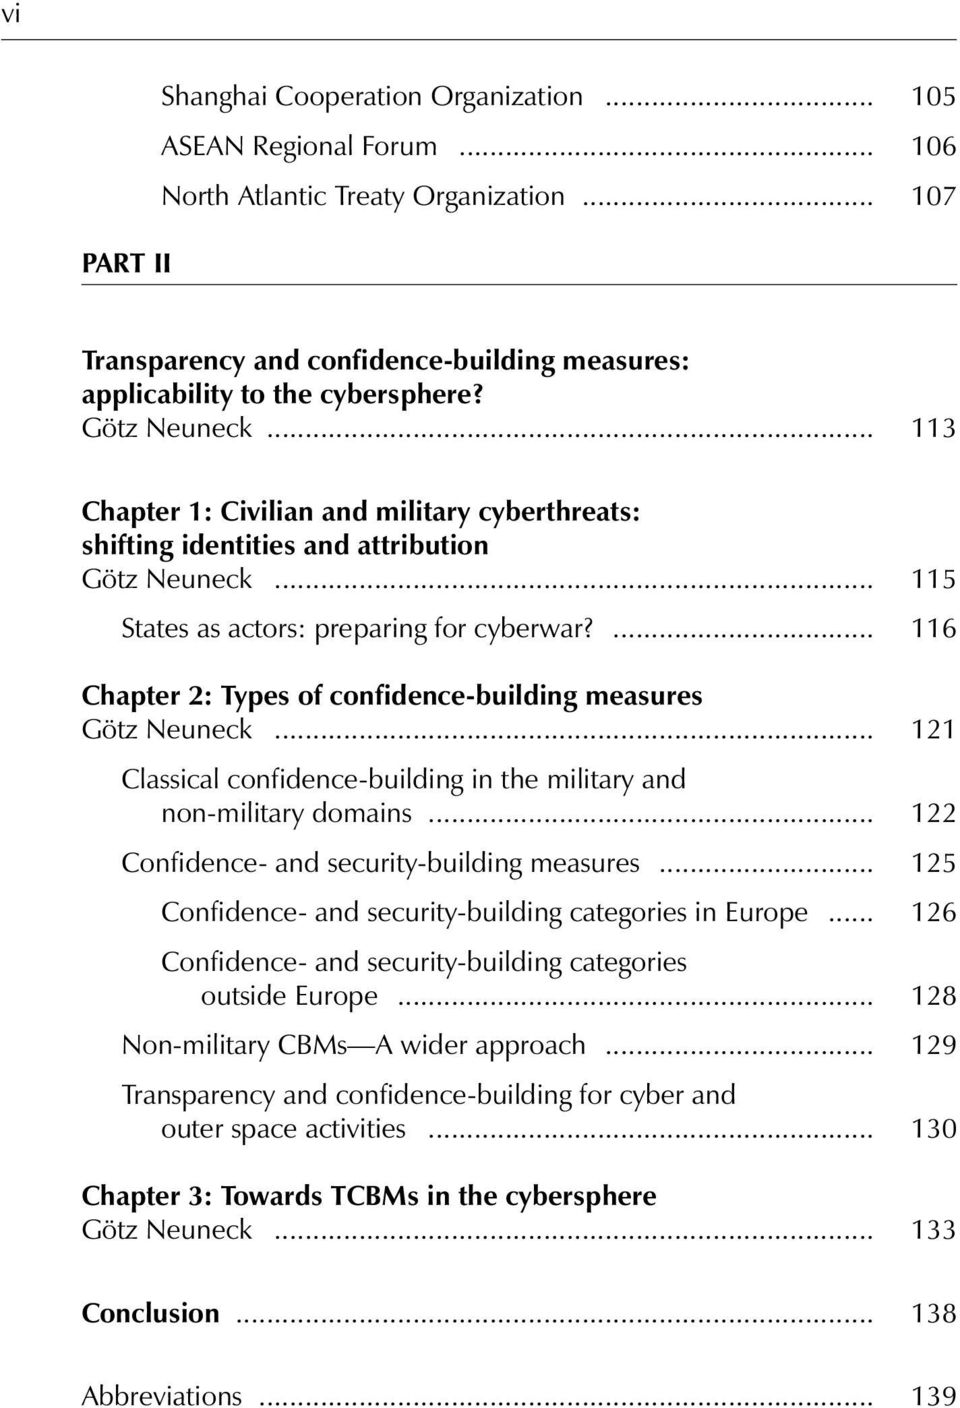 ... 116 Chapter 2: Types of confidence-building measures Götz Neuneck... 121 Classical confidence-building in the military and non-military domains... 122 Confidence- and security-building measures.